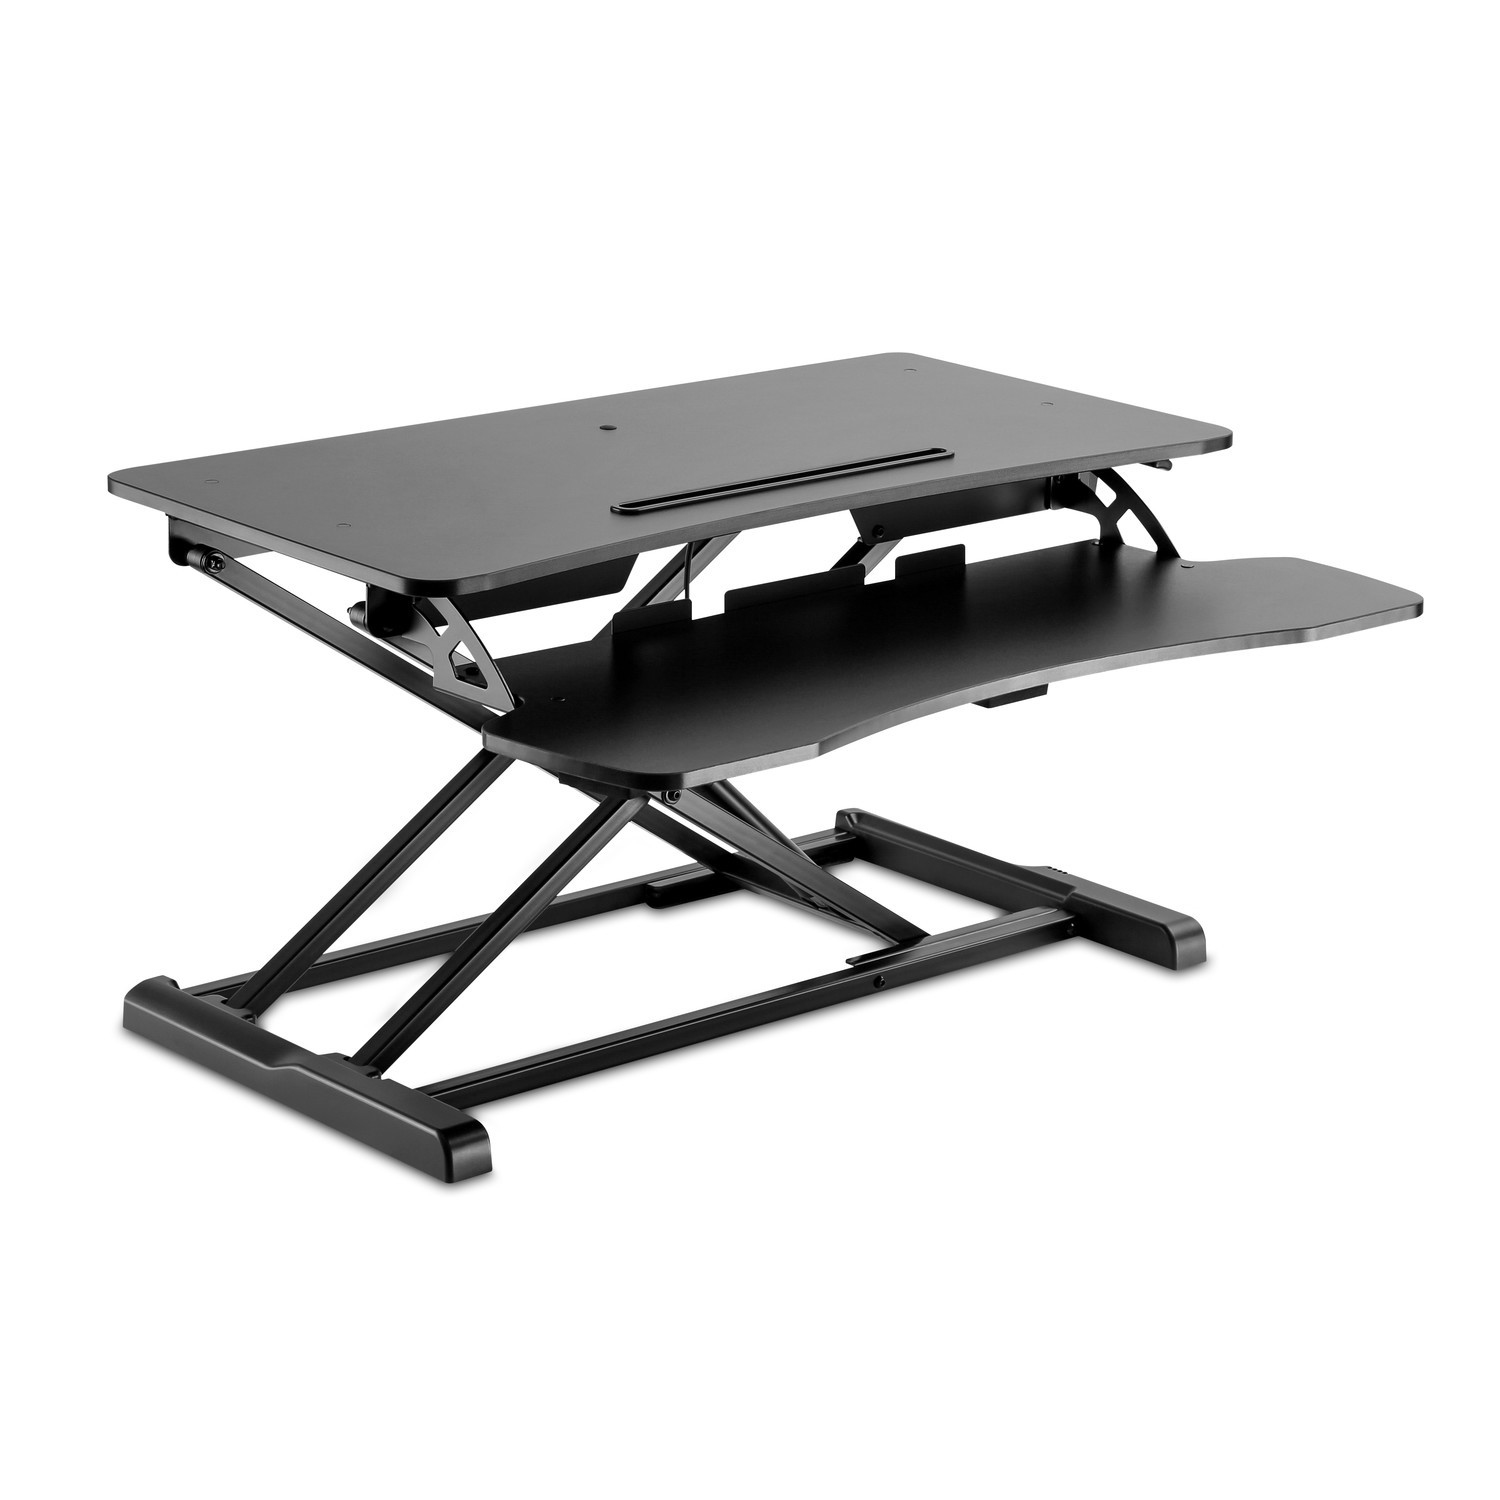 V7 - Mounts And Stands           Sit-stand Essential Workstation     Up To 33 Lbs (15 Kg) - Adj Hgt   In Dt2ssb-1e